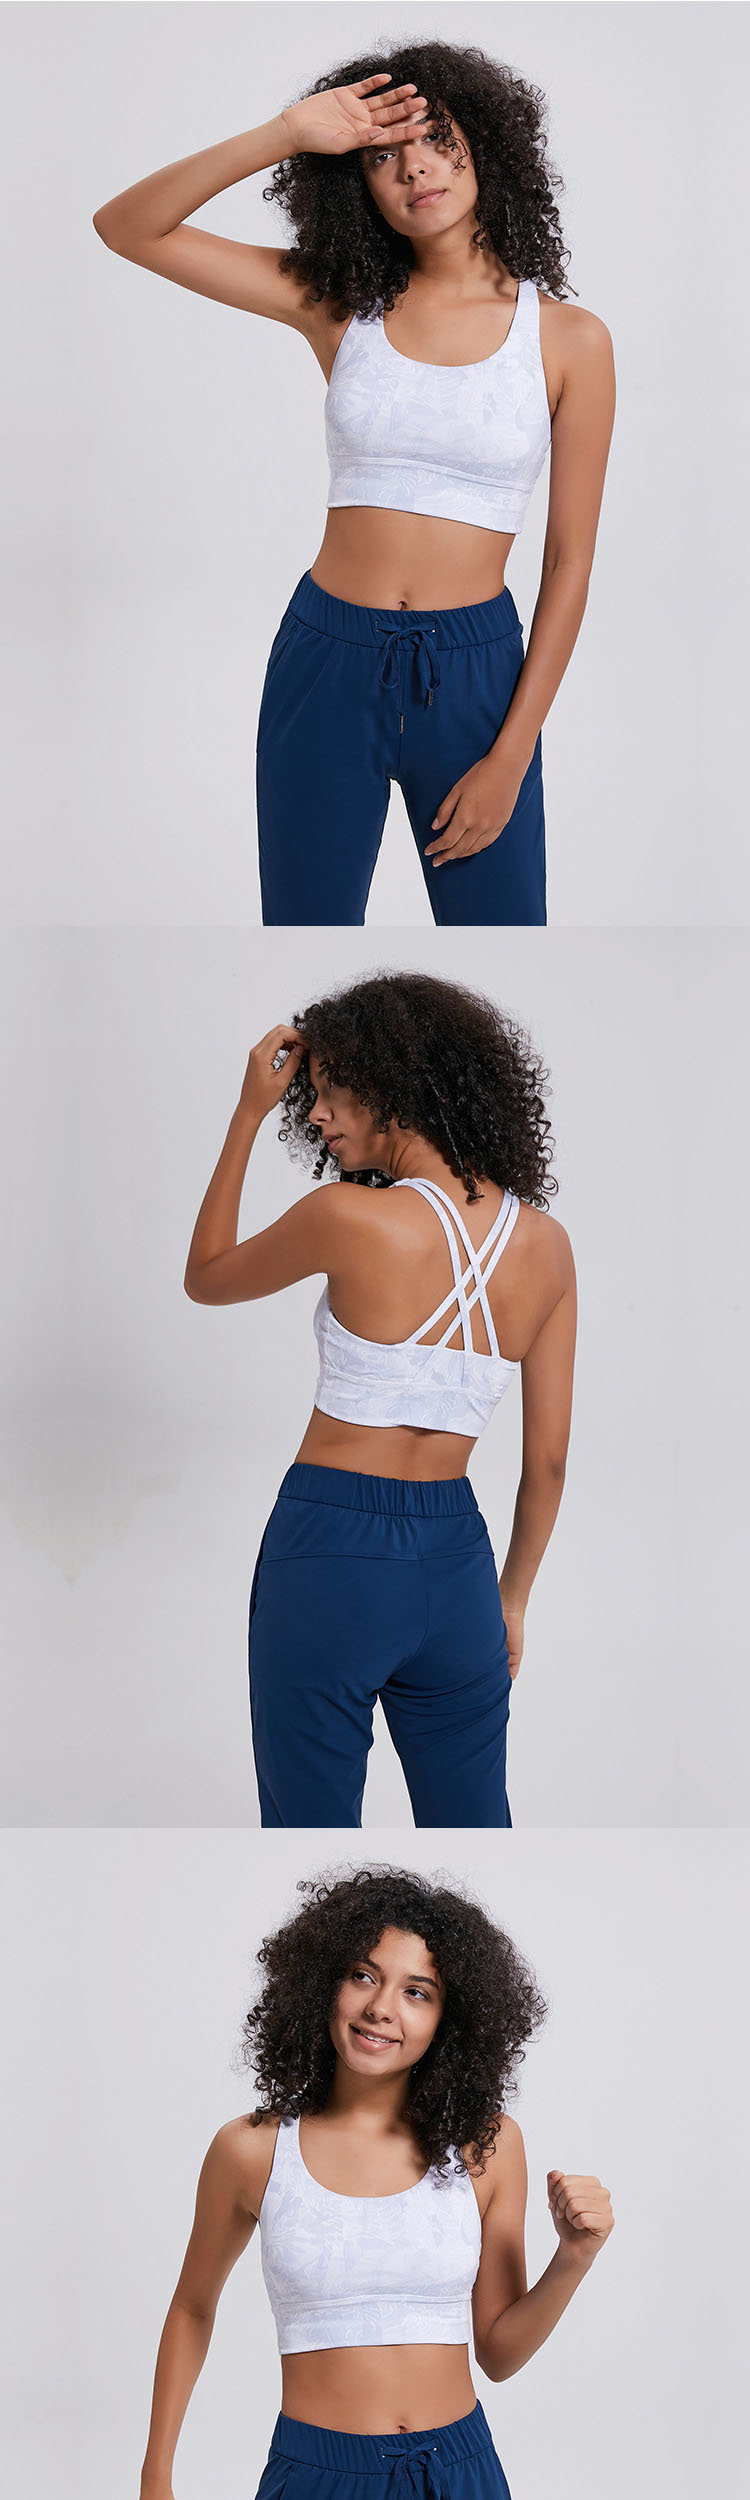 Stylish sports bra are processed by digital printing technology